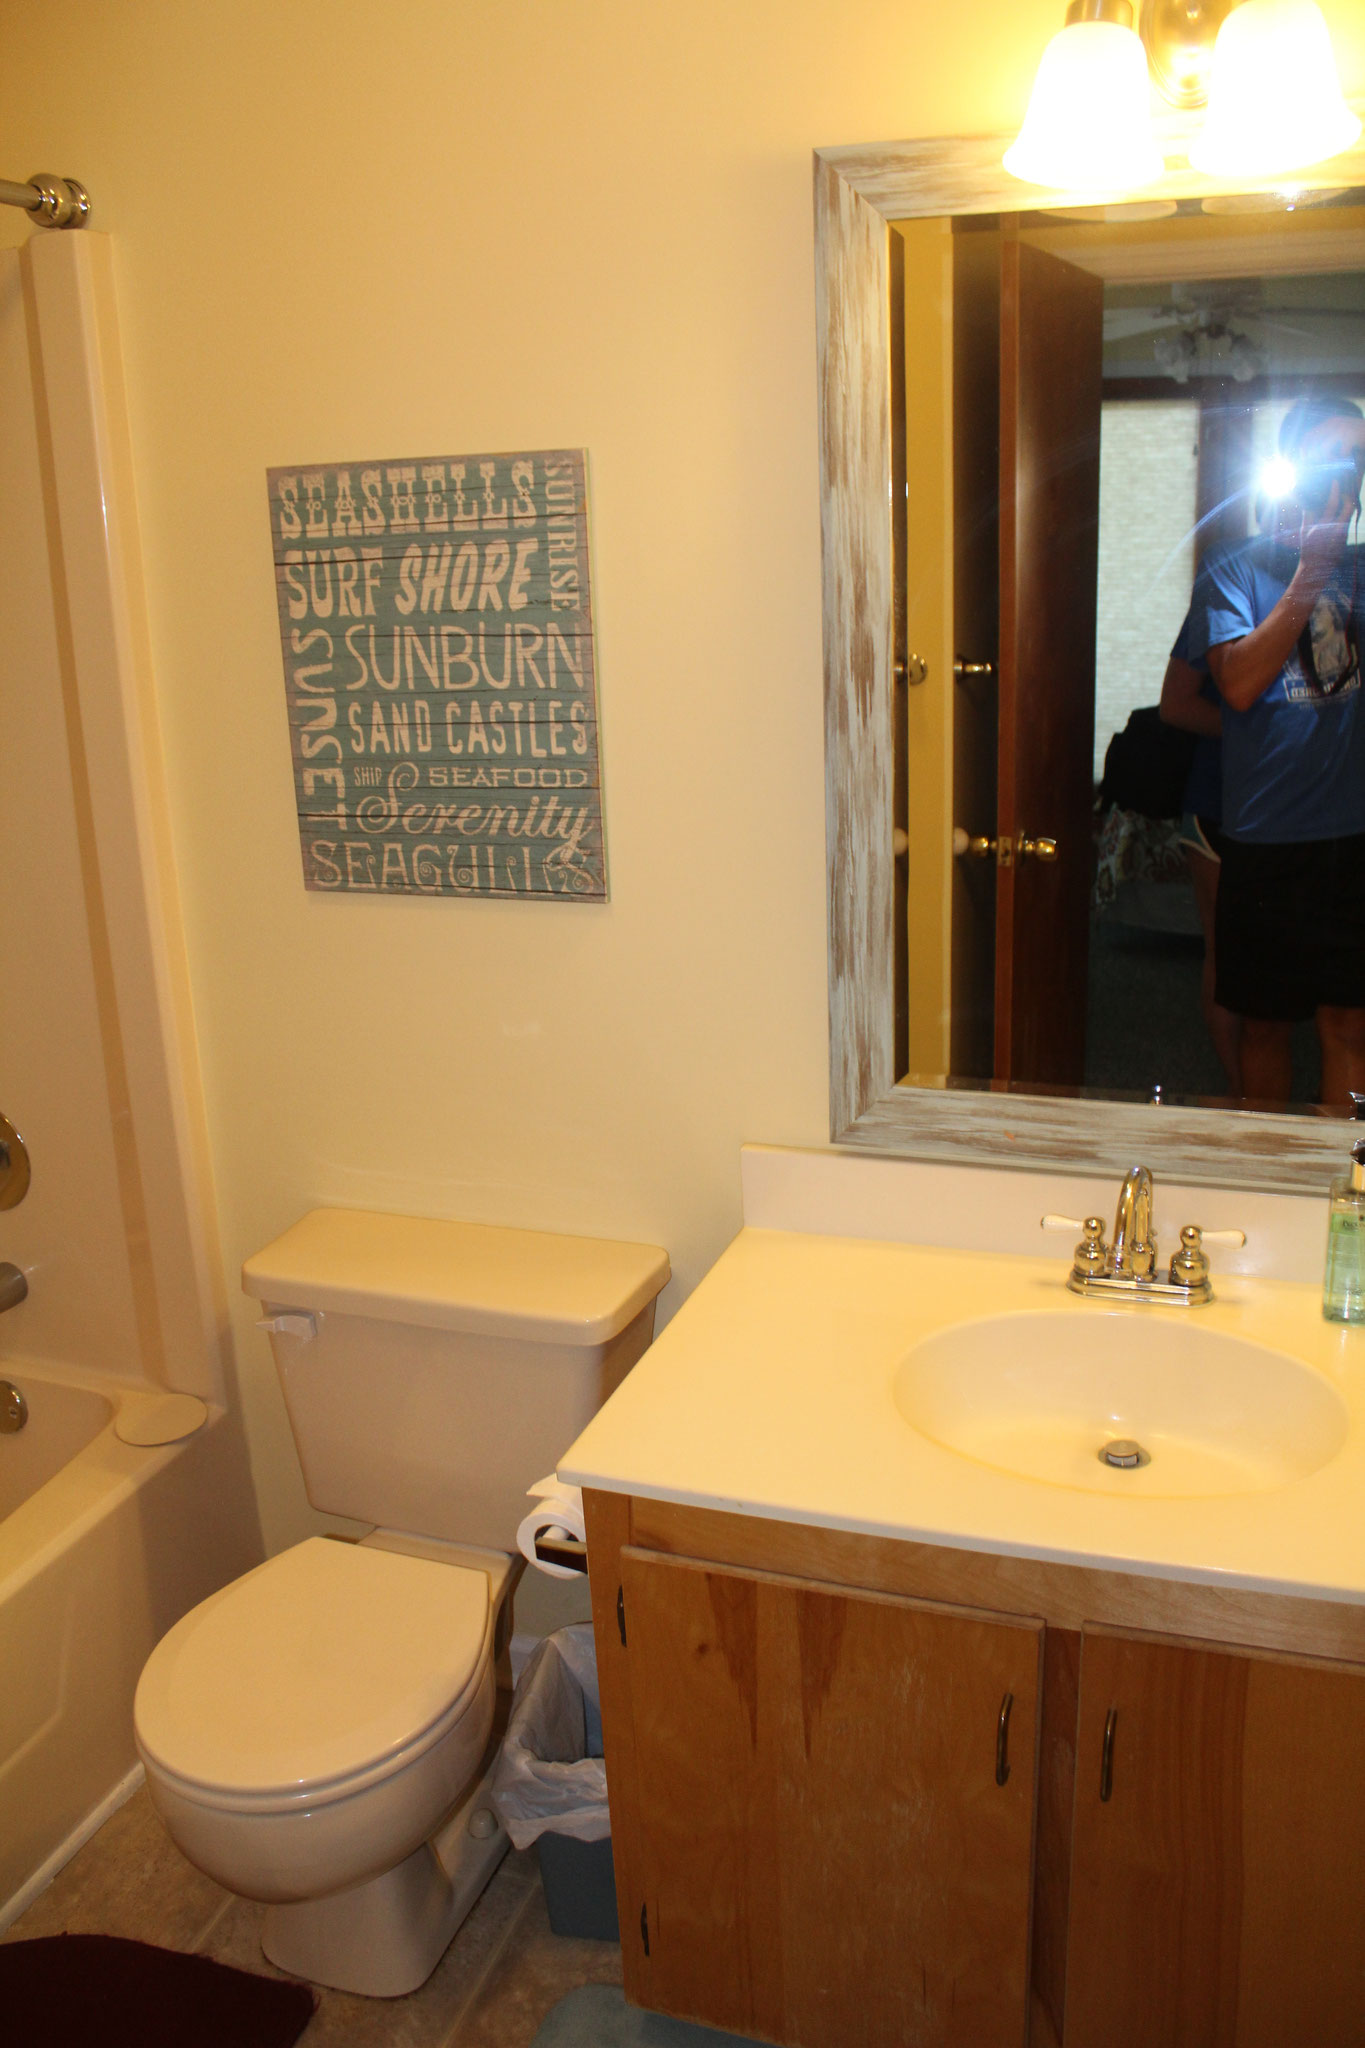 The bathroom attached to the first bedroom is also accessible from the hall.